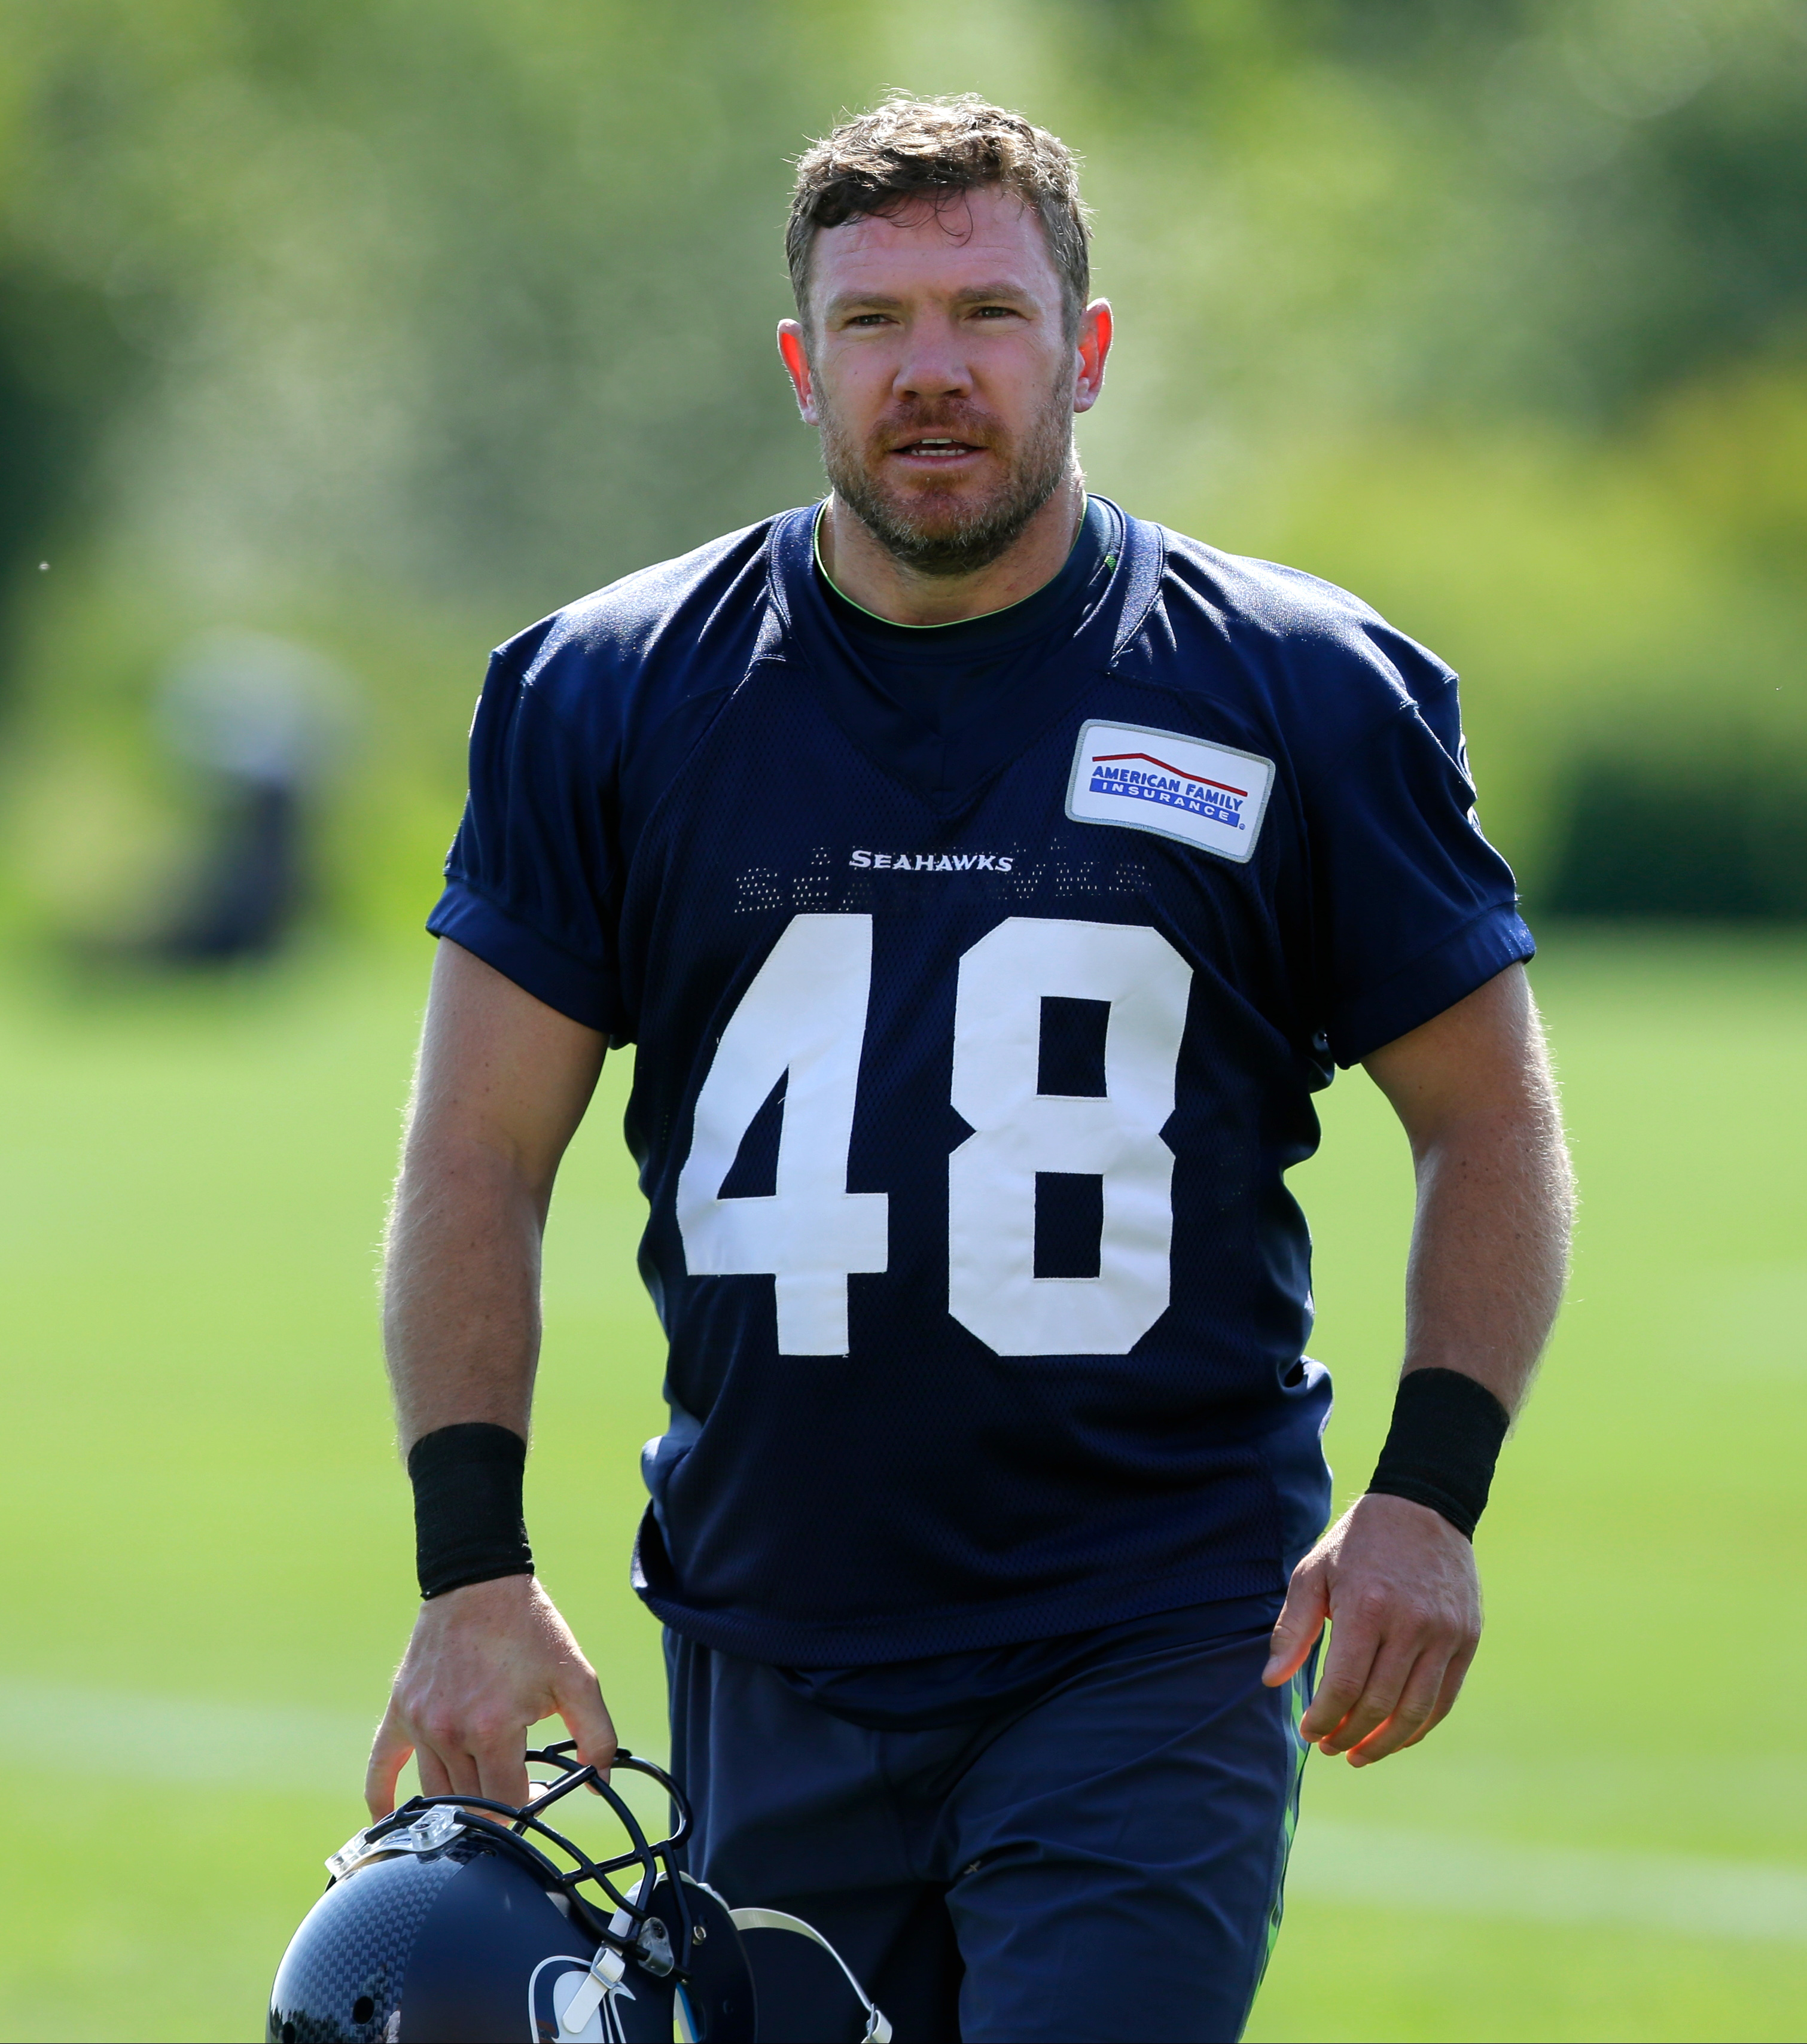 U.S. Army veteran and former Texas long snapper Nate Boyer walks off the field following Seattle Seahawks NFL football rookie minicamp, Friday, May 8, 2015 in Renton, Wash. (AP Photo/Ted S. Warren)